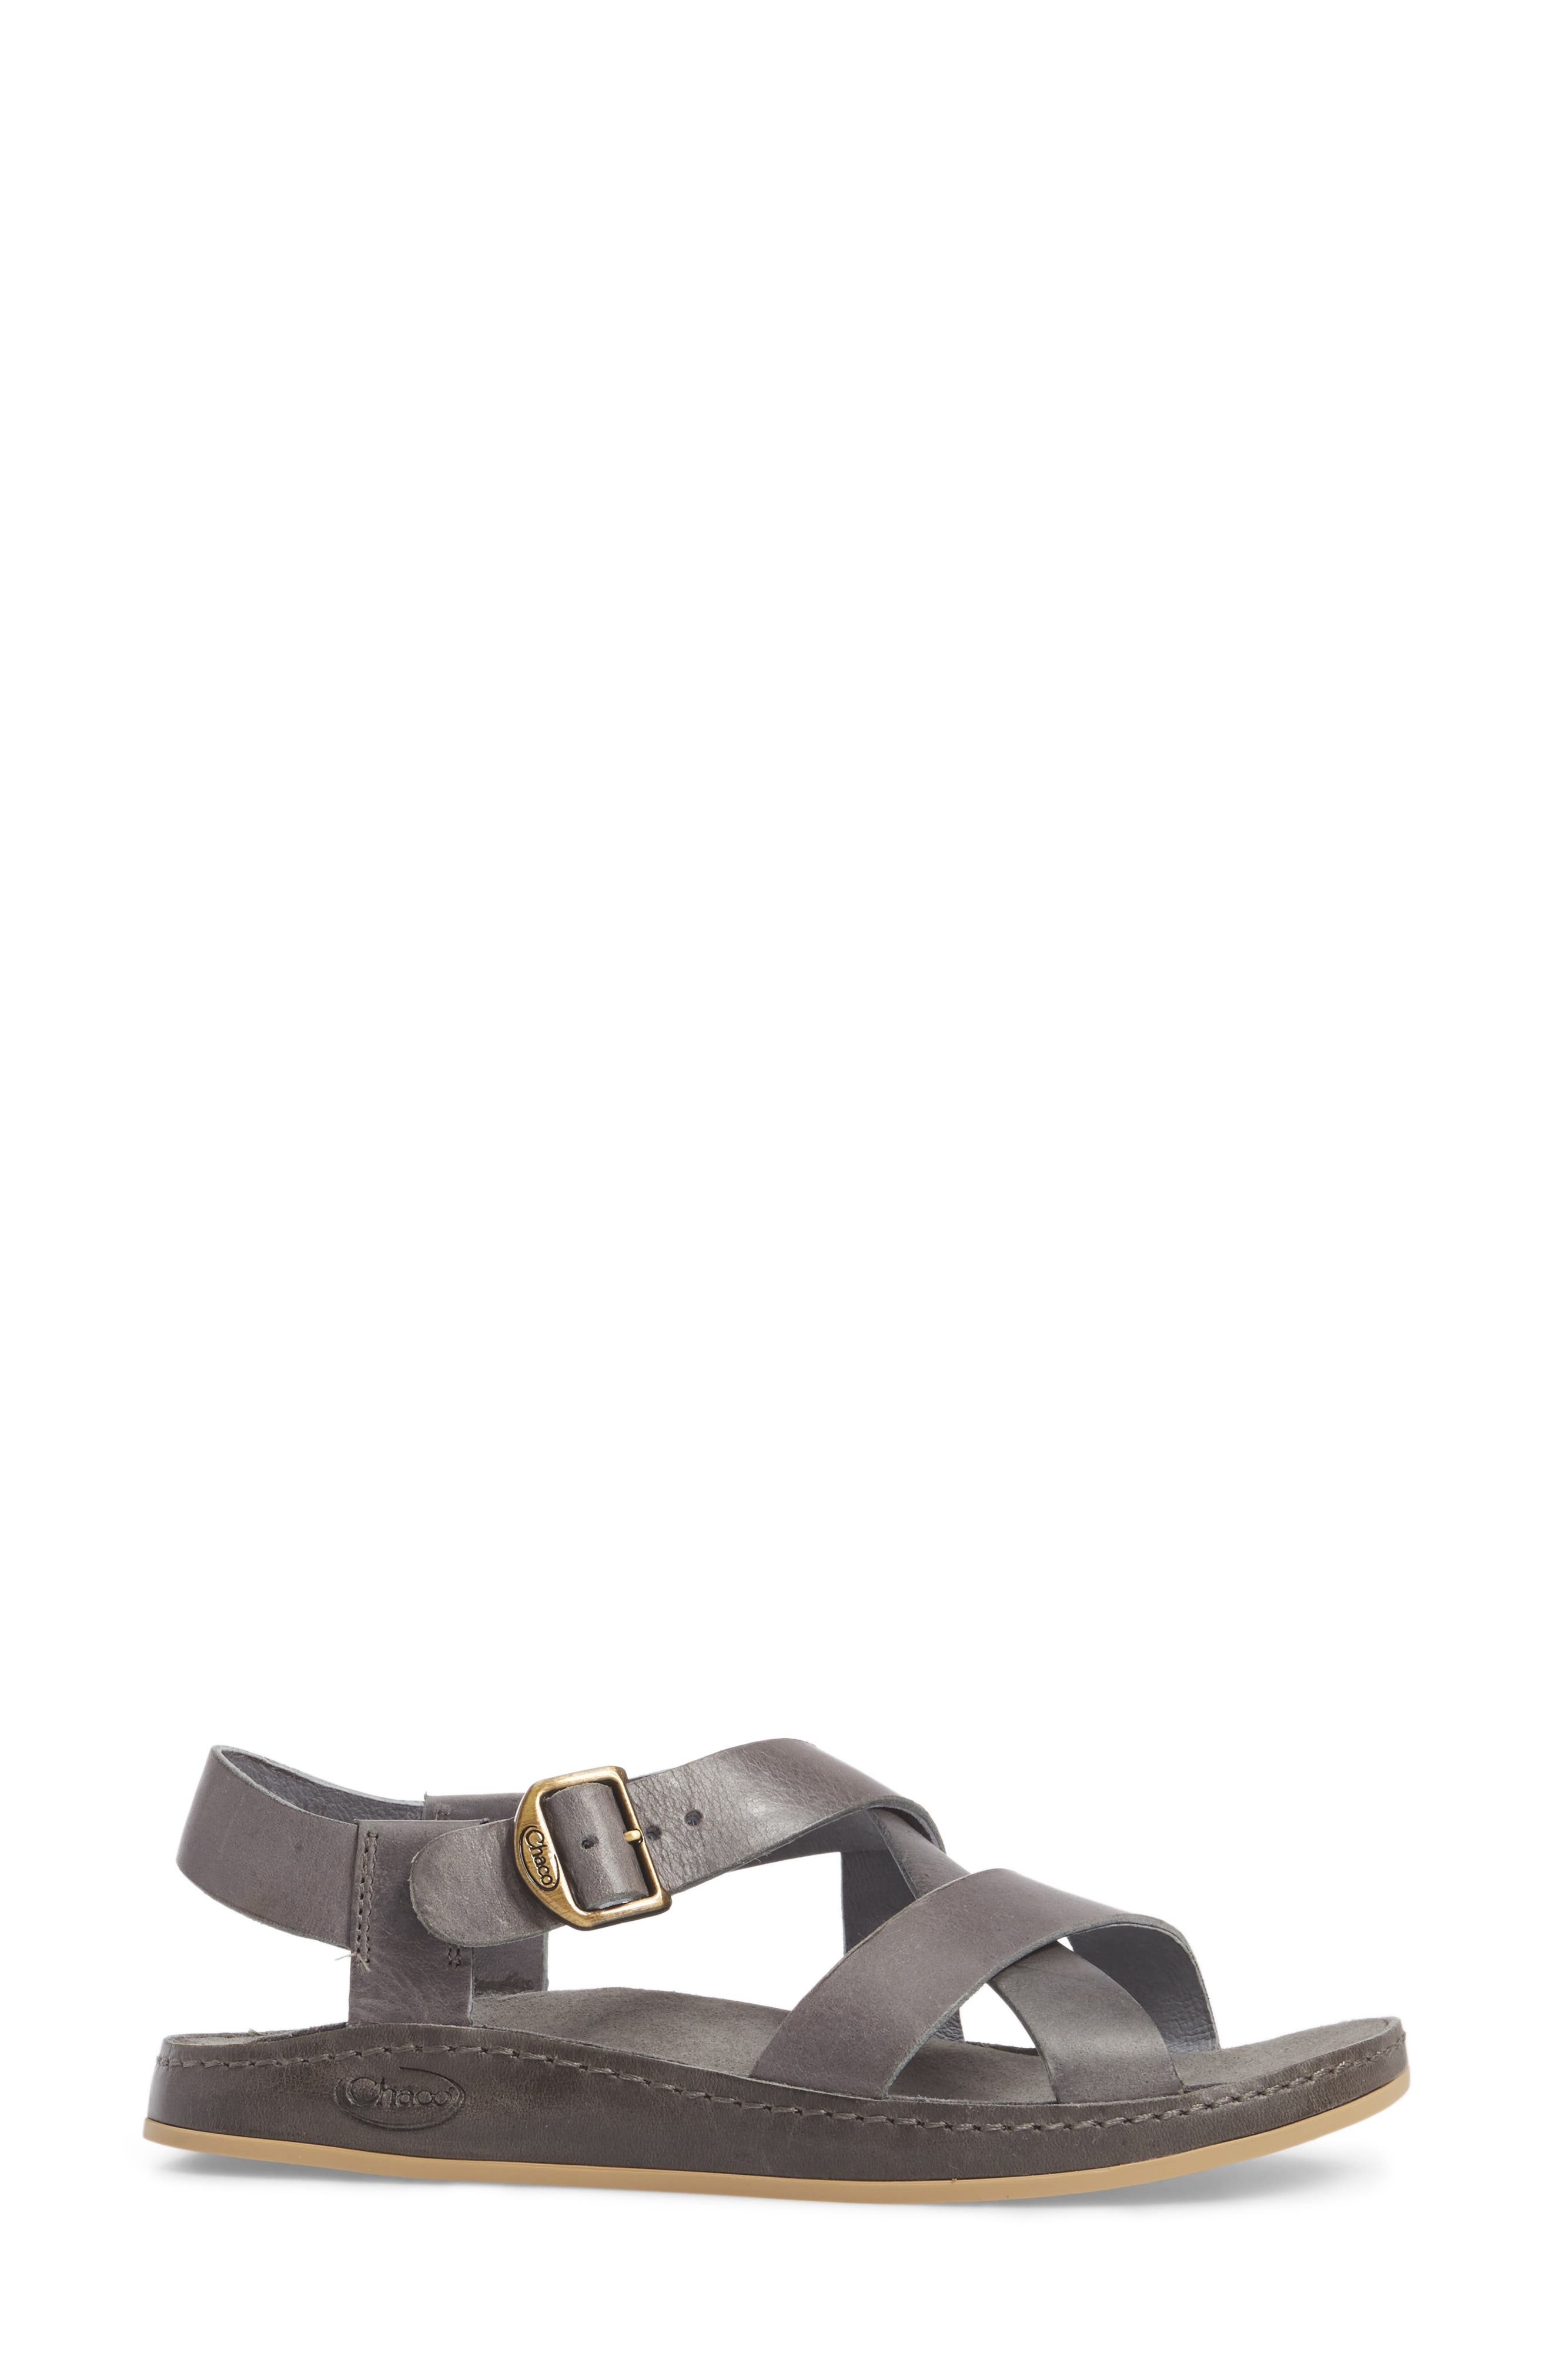 Strappy Sandal,                             Alternate thumbnail 3, color,                             GREY LEATHER